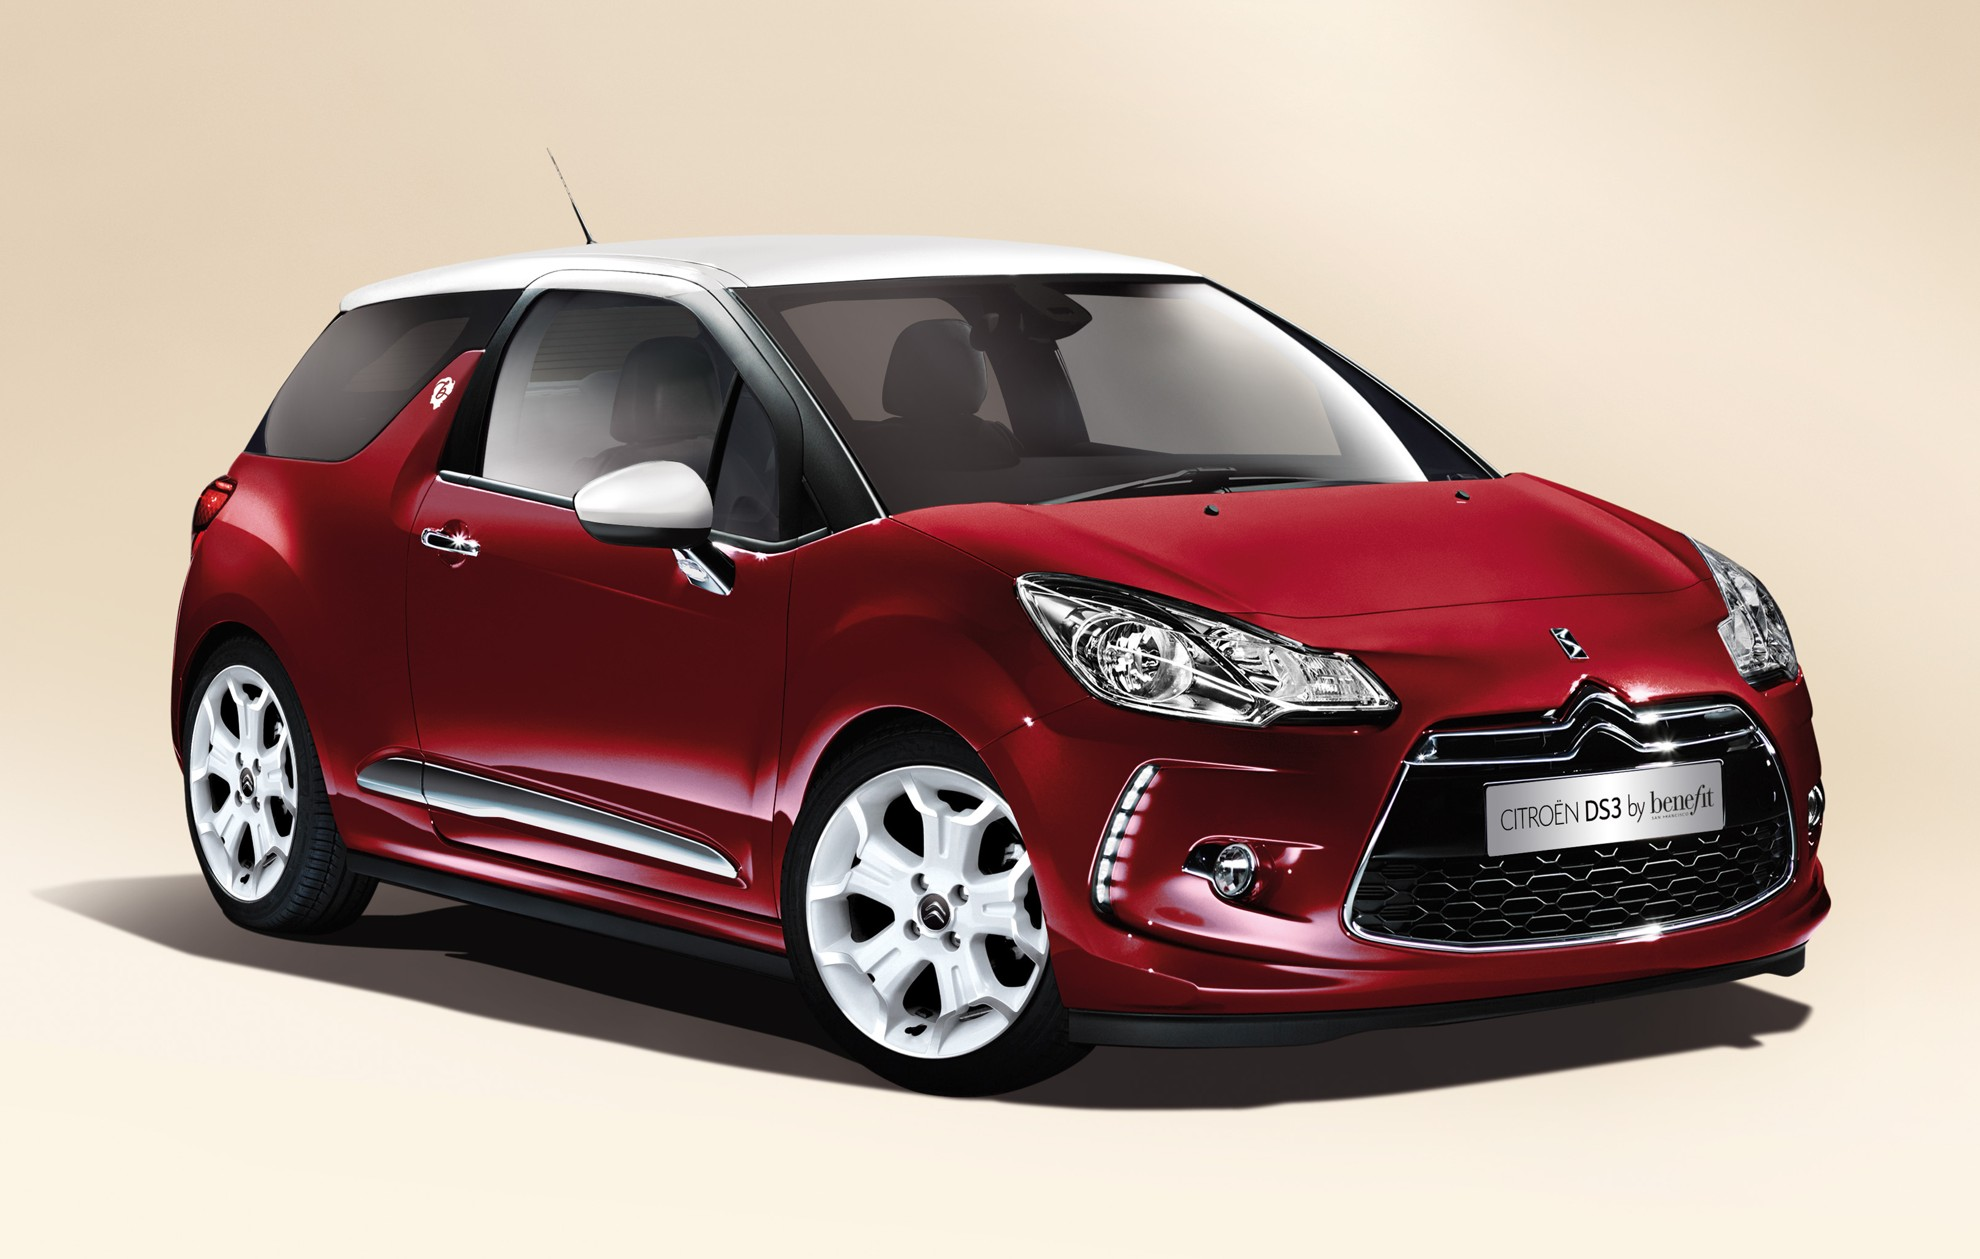 New Citroën DS3 Special Editions